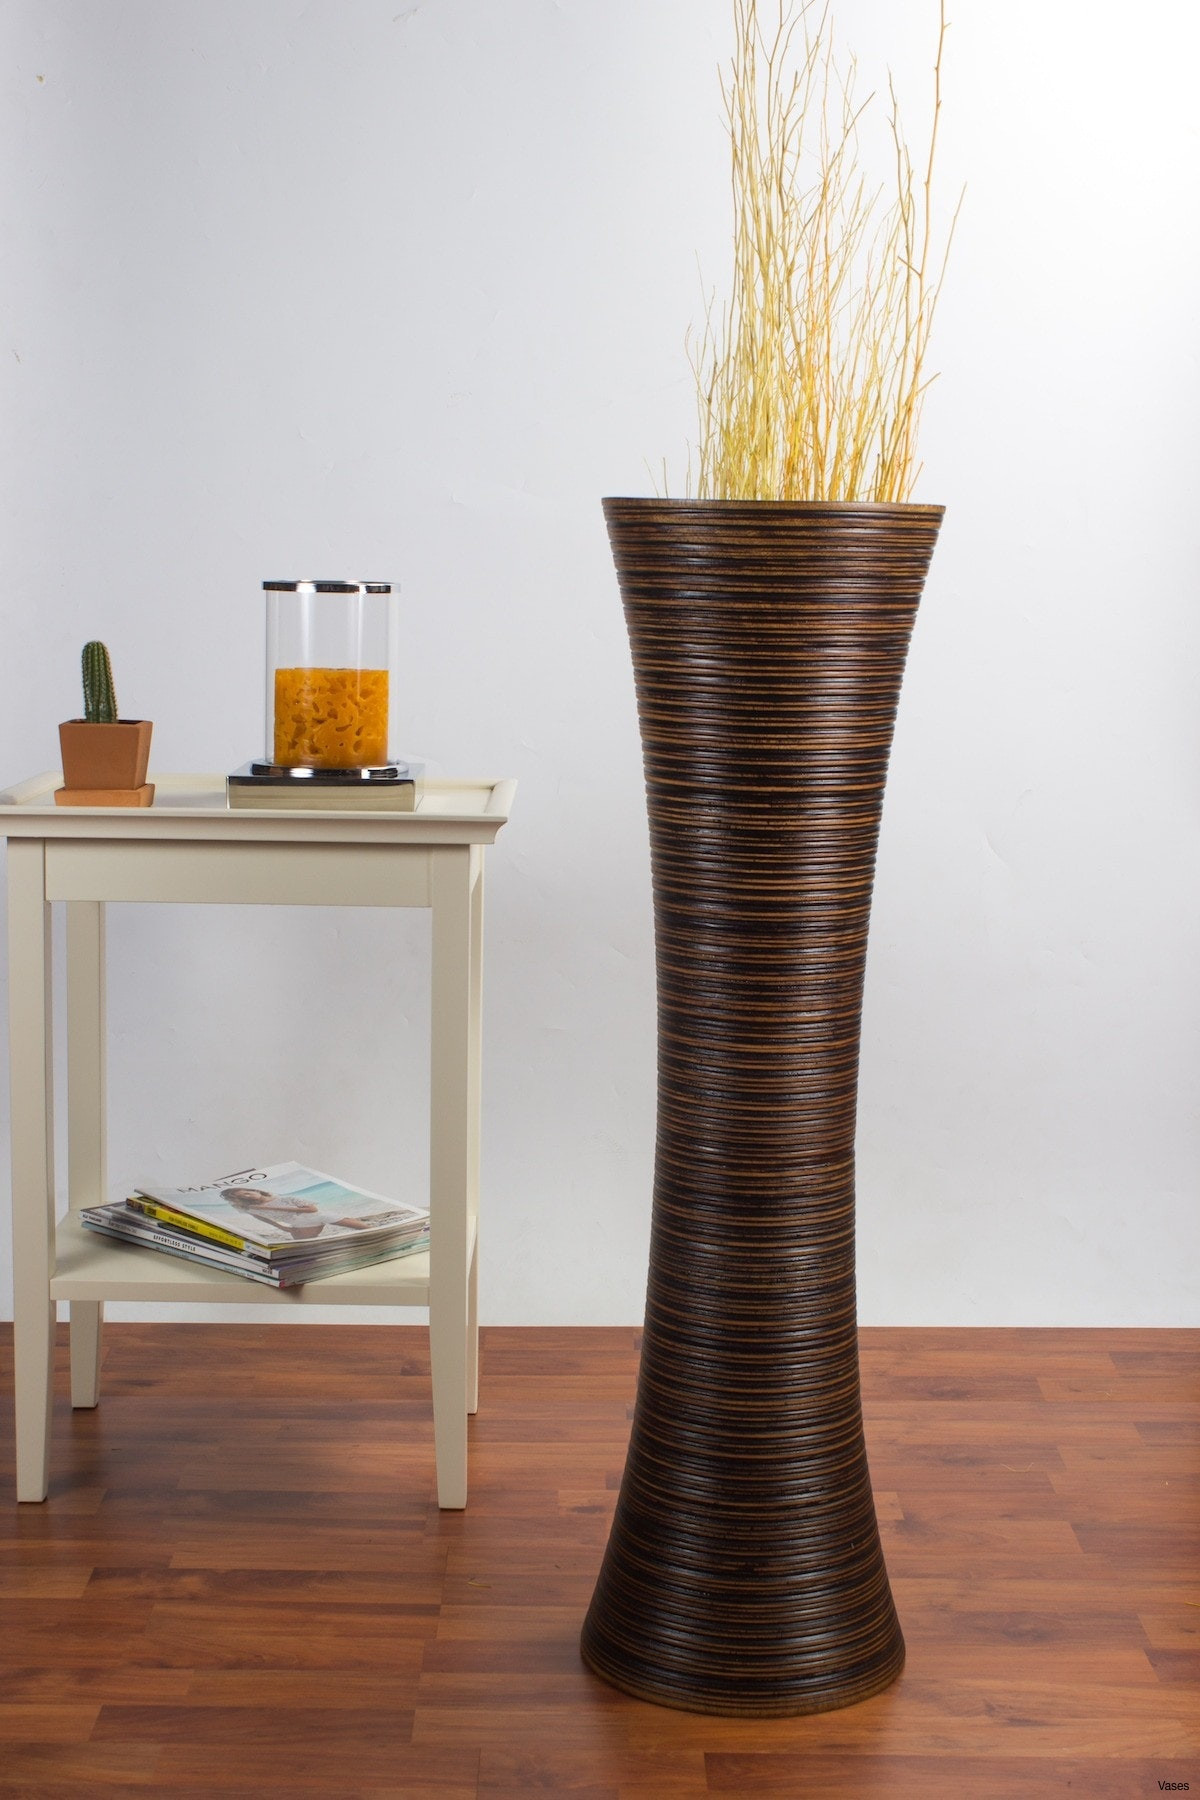 orchid vase of decorative metal floor vases awesome decorative floor vases fresh d within decorative metal floor vases awesome decorative floor vases fresh d dkbrw 5749 1h vases tall brown